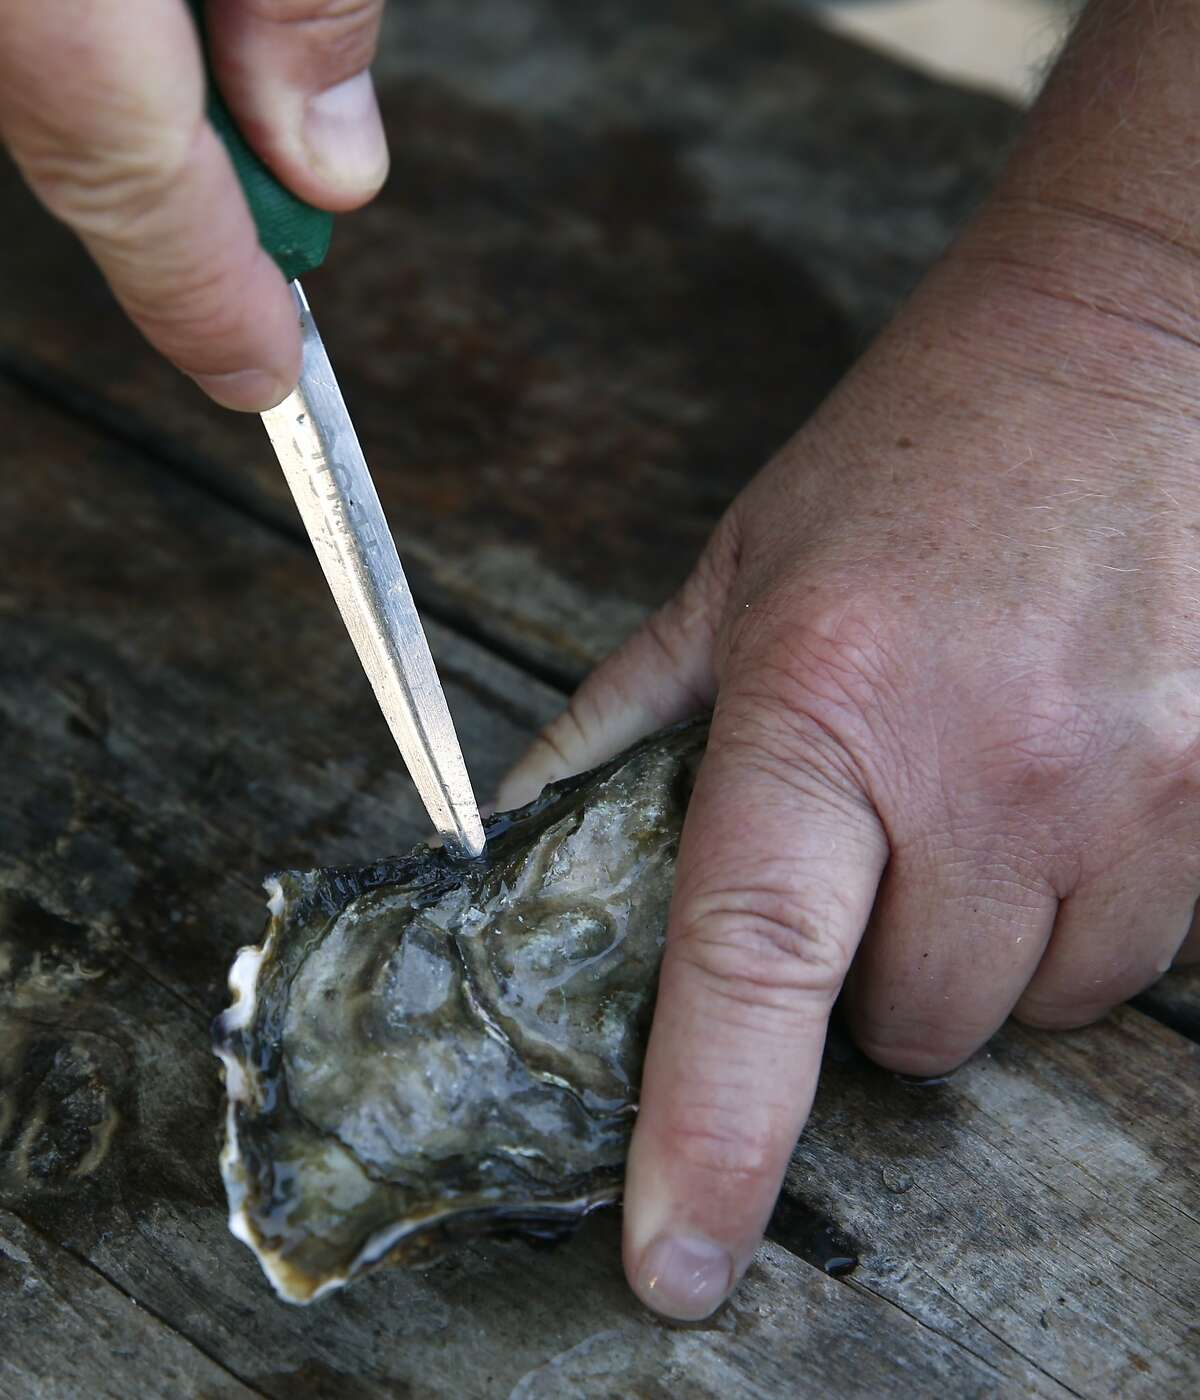 Tomales Bay Oyster Company manager Martin Seiler cracks open a Pacific oyster in Marshall, Calif. on Friday, Oct. 2, 2015. The popular spot on the eastern shore of Tomales Bay is being to forced to close down its picnic areas by Marin County citing a concern for parking and traffic issues along Highway 1.